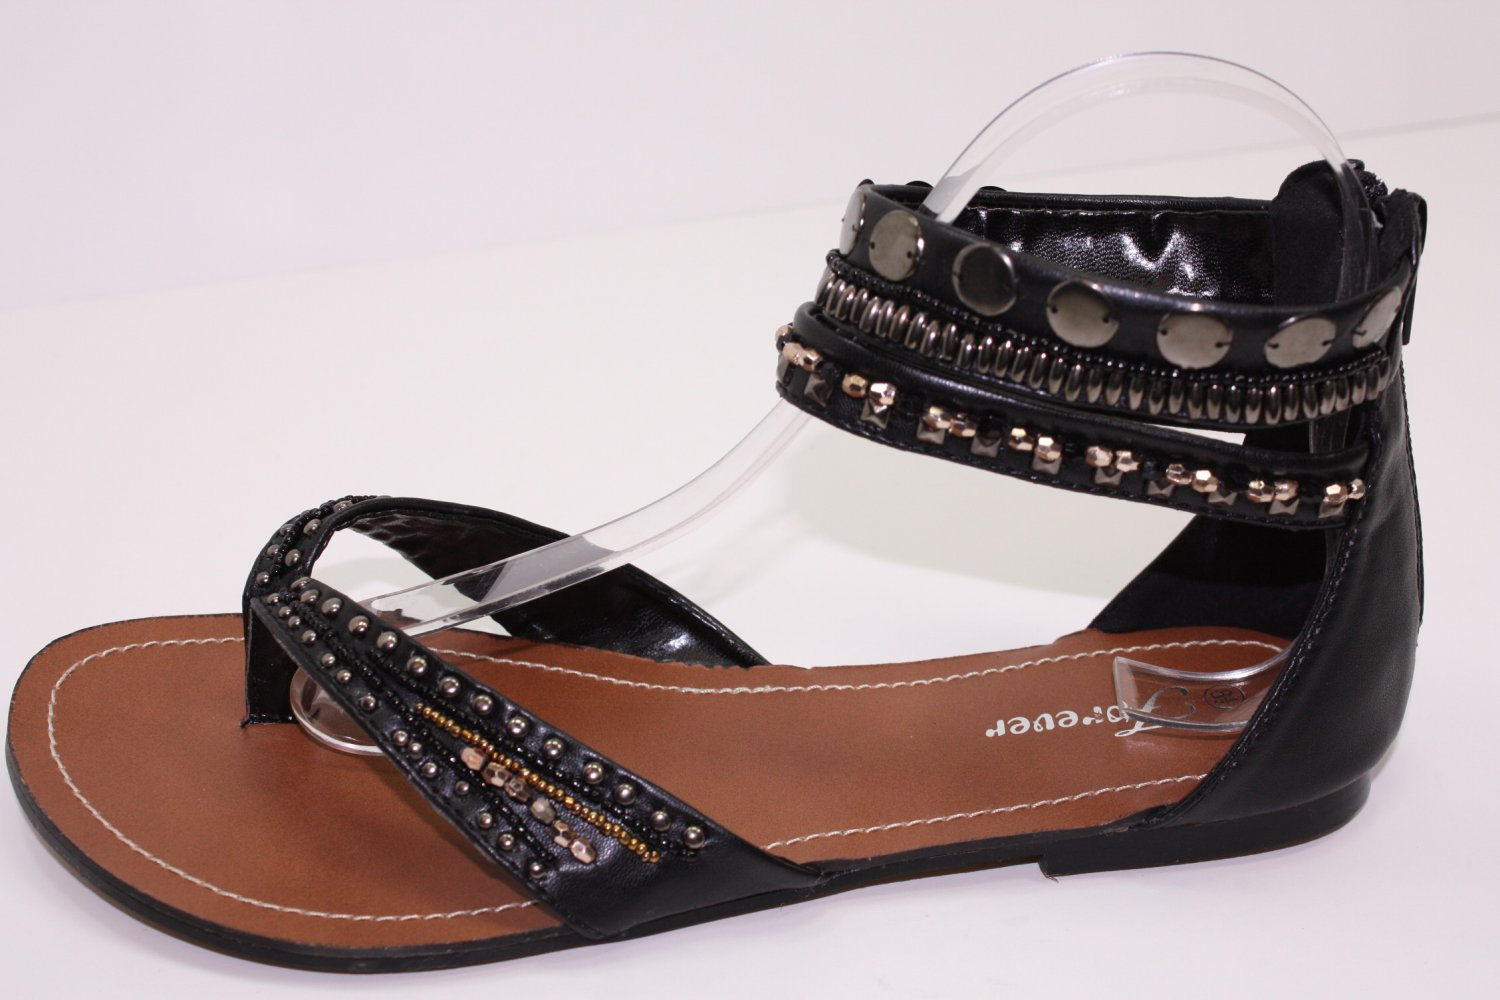 New Style Sandals Thongs Strappy Beaded Rhinestone